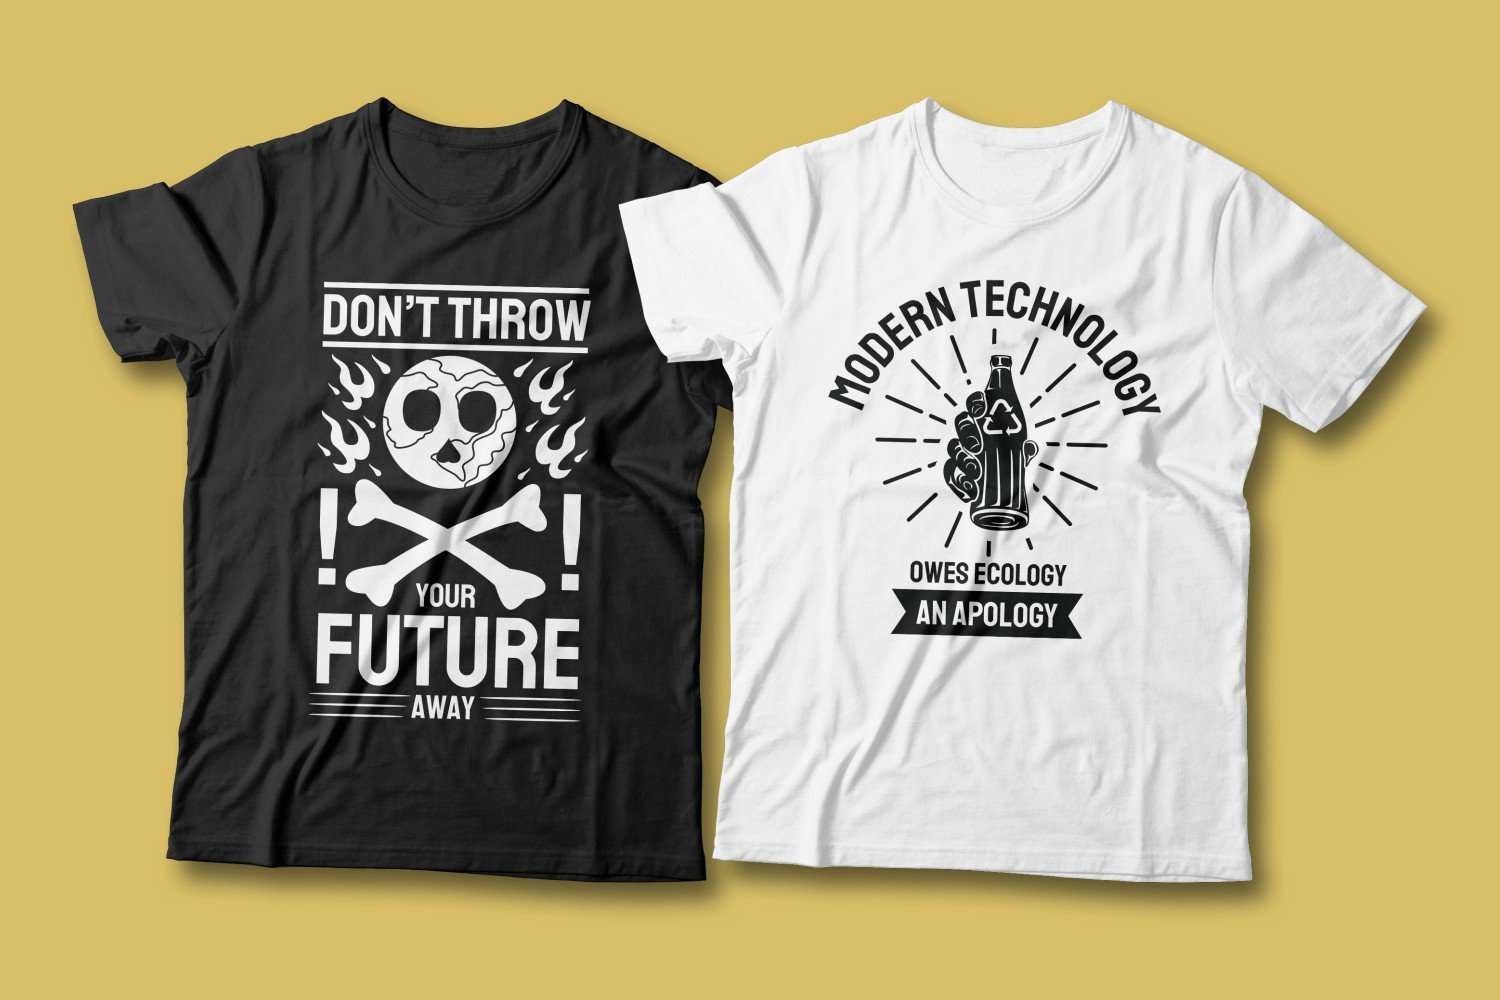 Two T-shirts - white and black. Both are about preserving nature from factories and emissions.